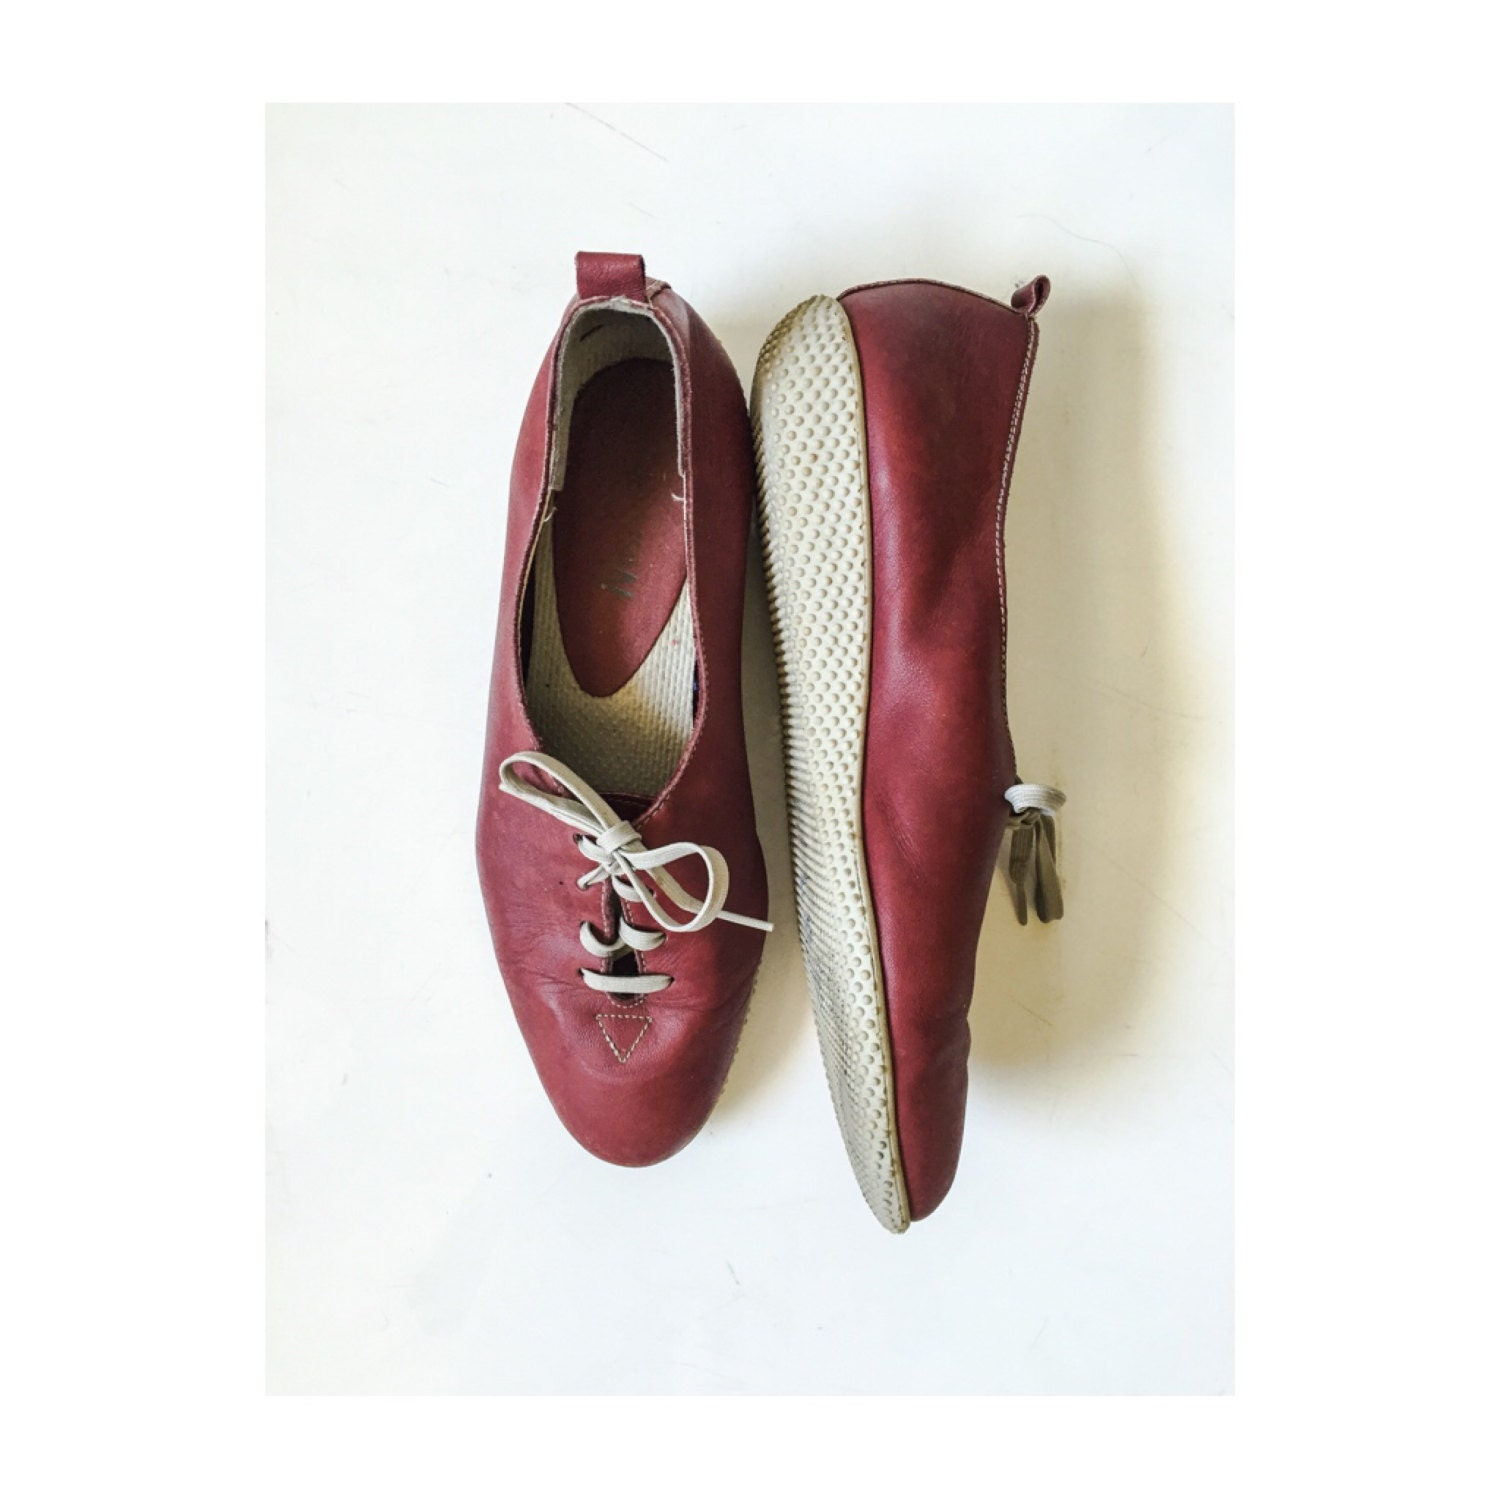 vintage maroon and white tennis shoes by selby vintage